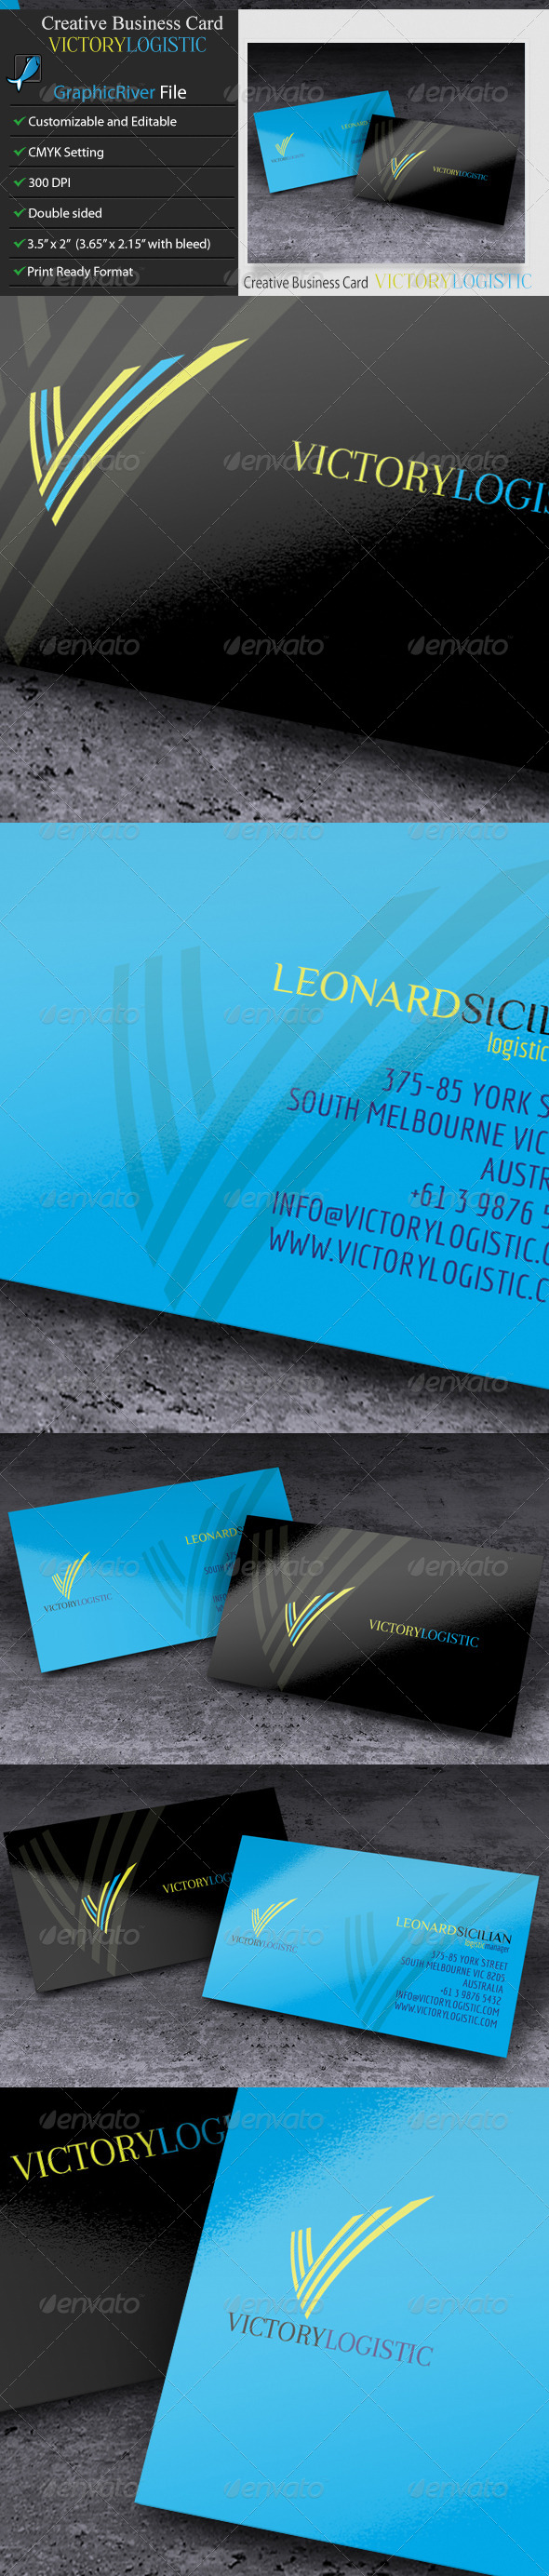 GraphicRiver Creative Business Card Victory Logistic 5967404